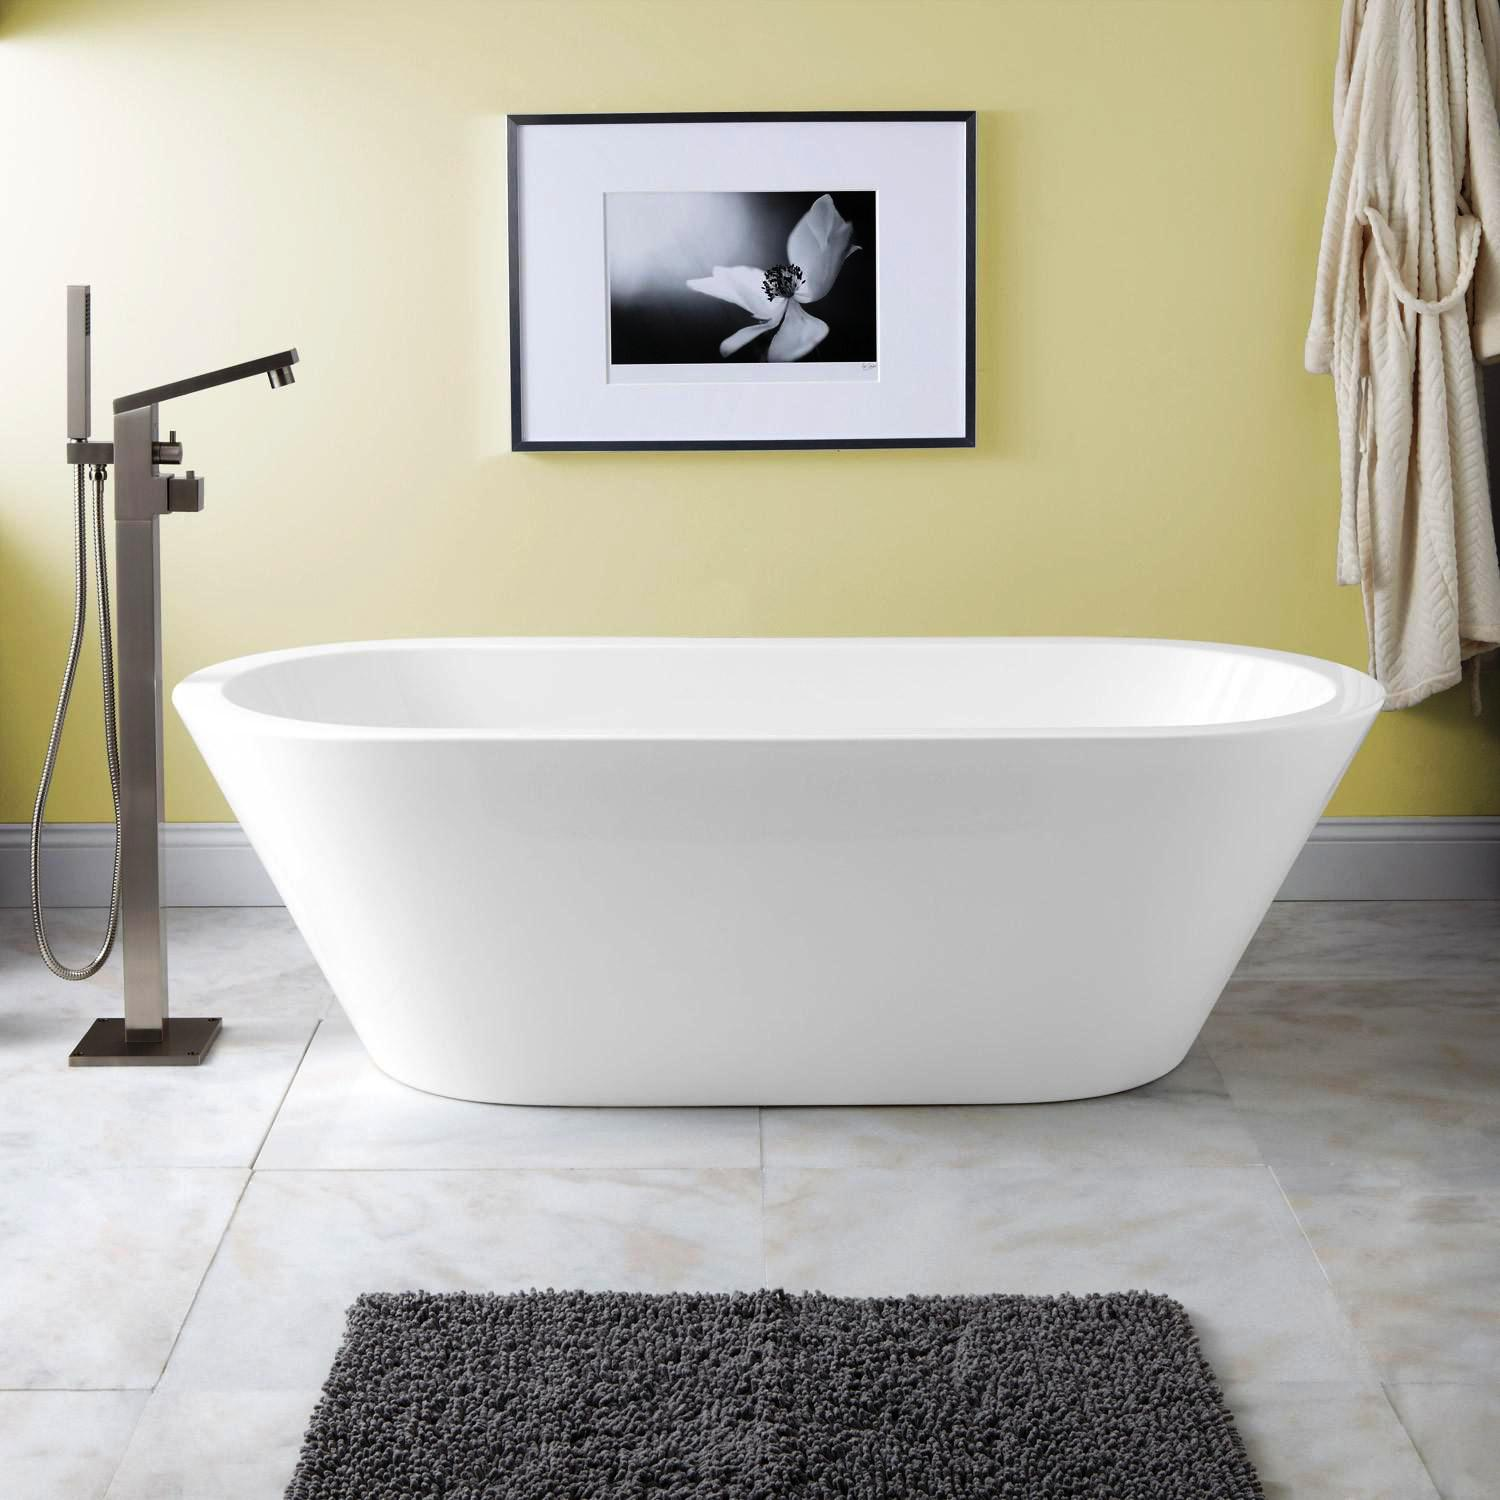 Top Advice On Acrylic Tub Schmidt Gallery Design